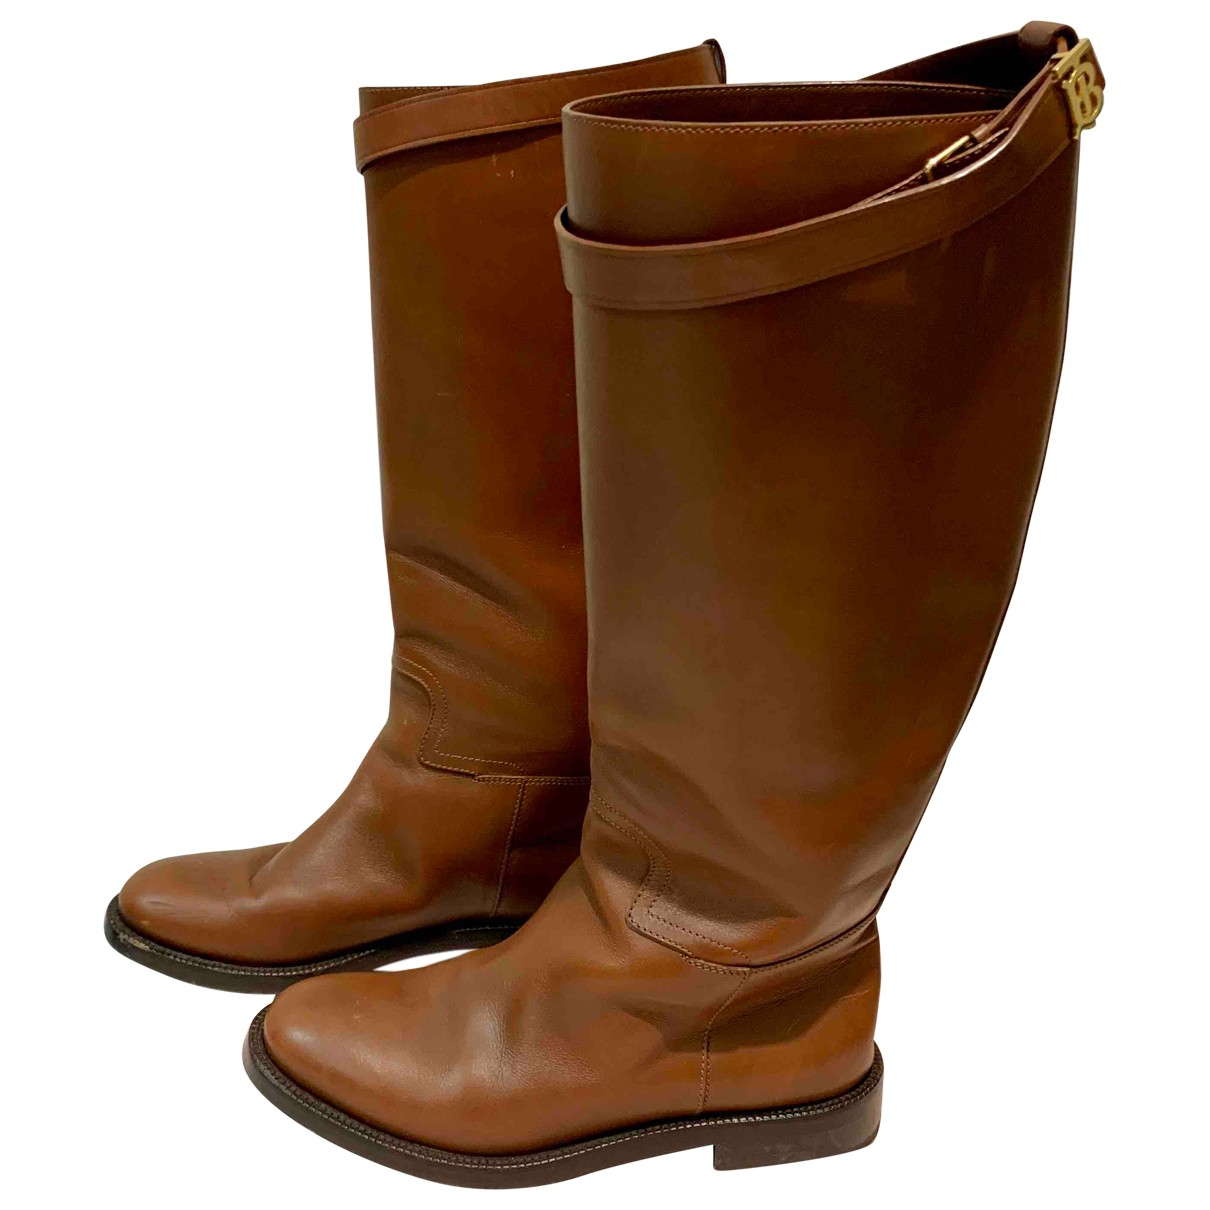 Burberry N Camel Leather Boots for Women 38 EU